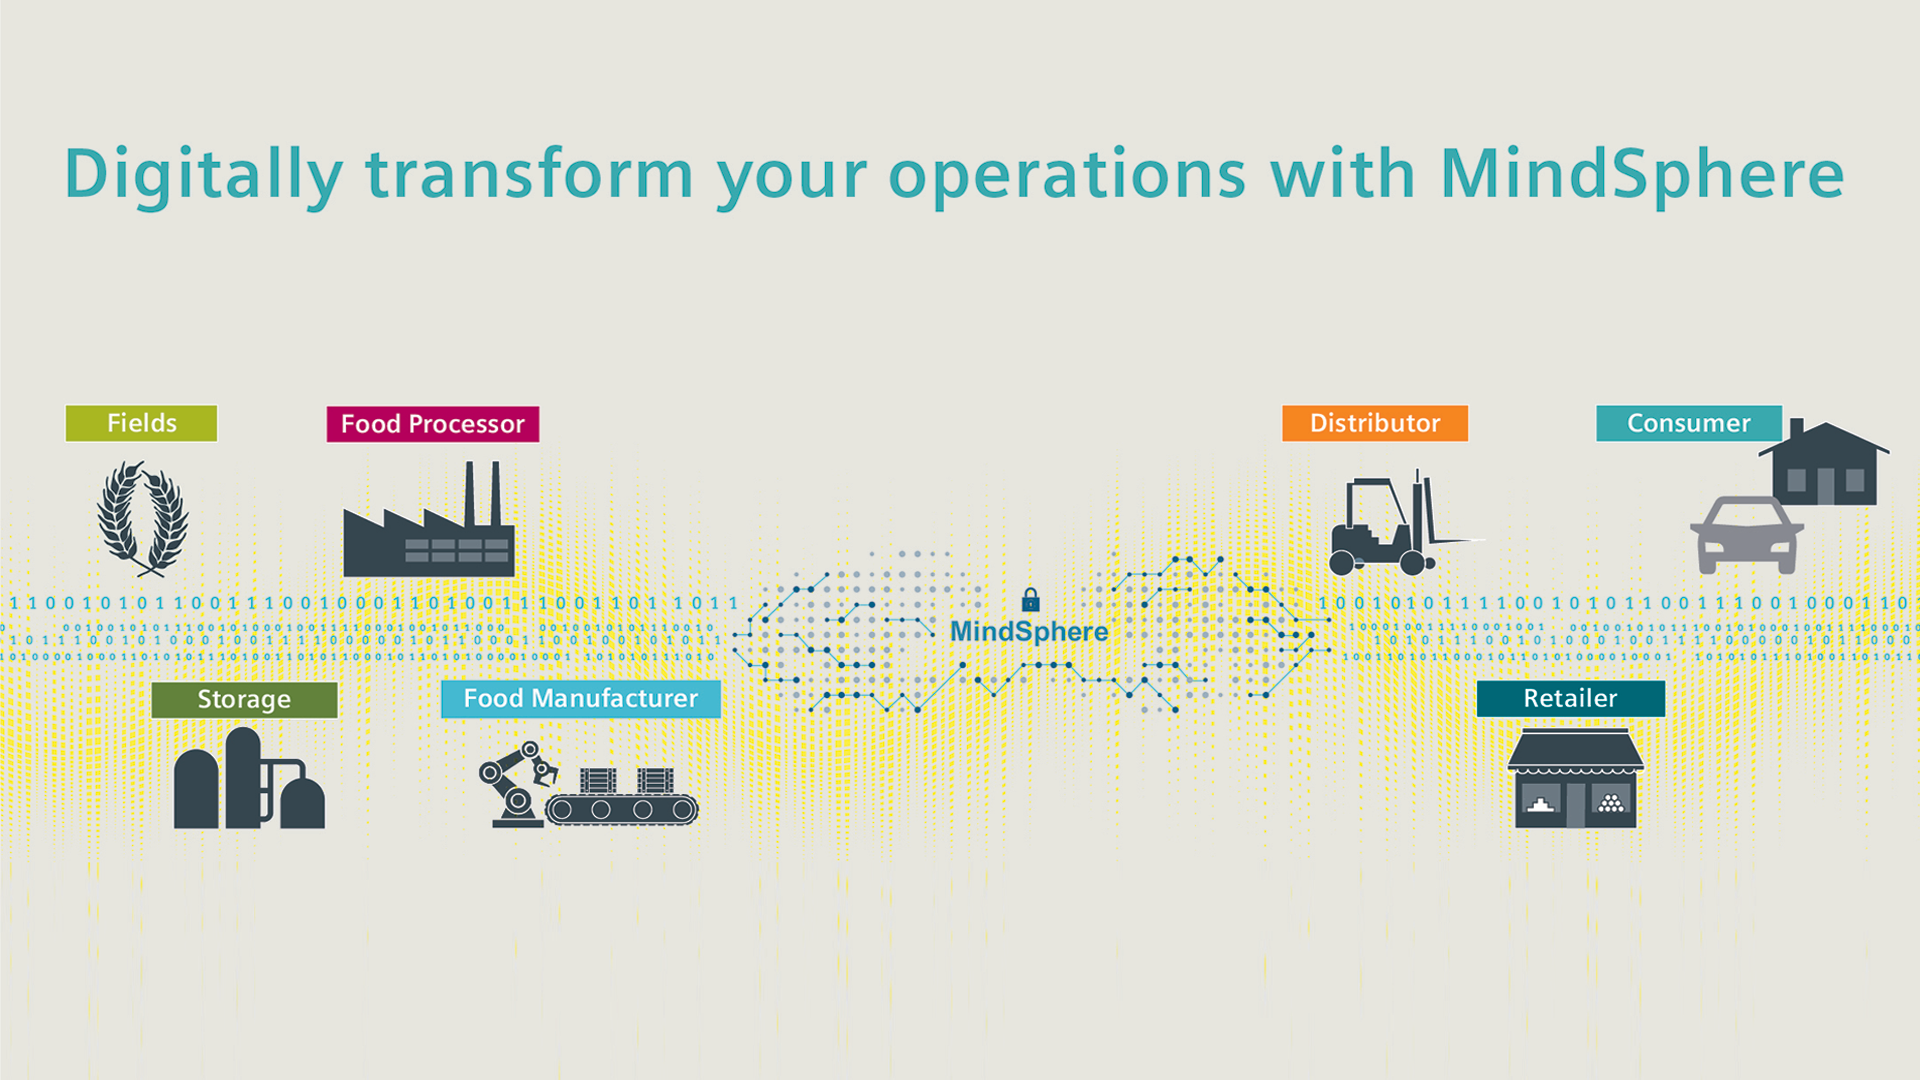 Supply chain transparency from Farm to Table with MindSphere